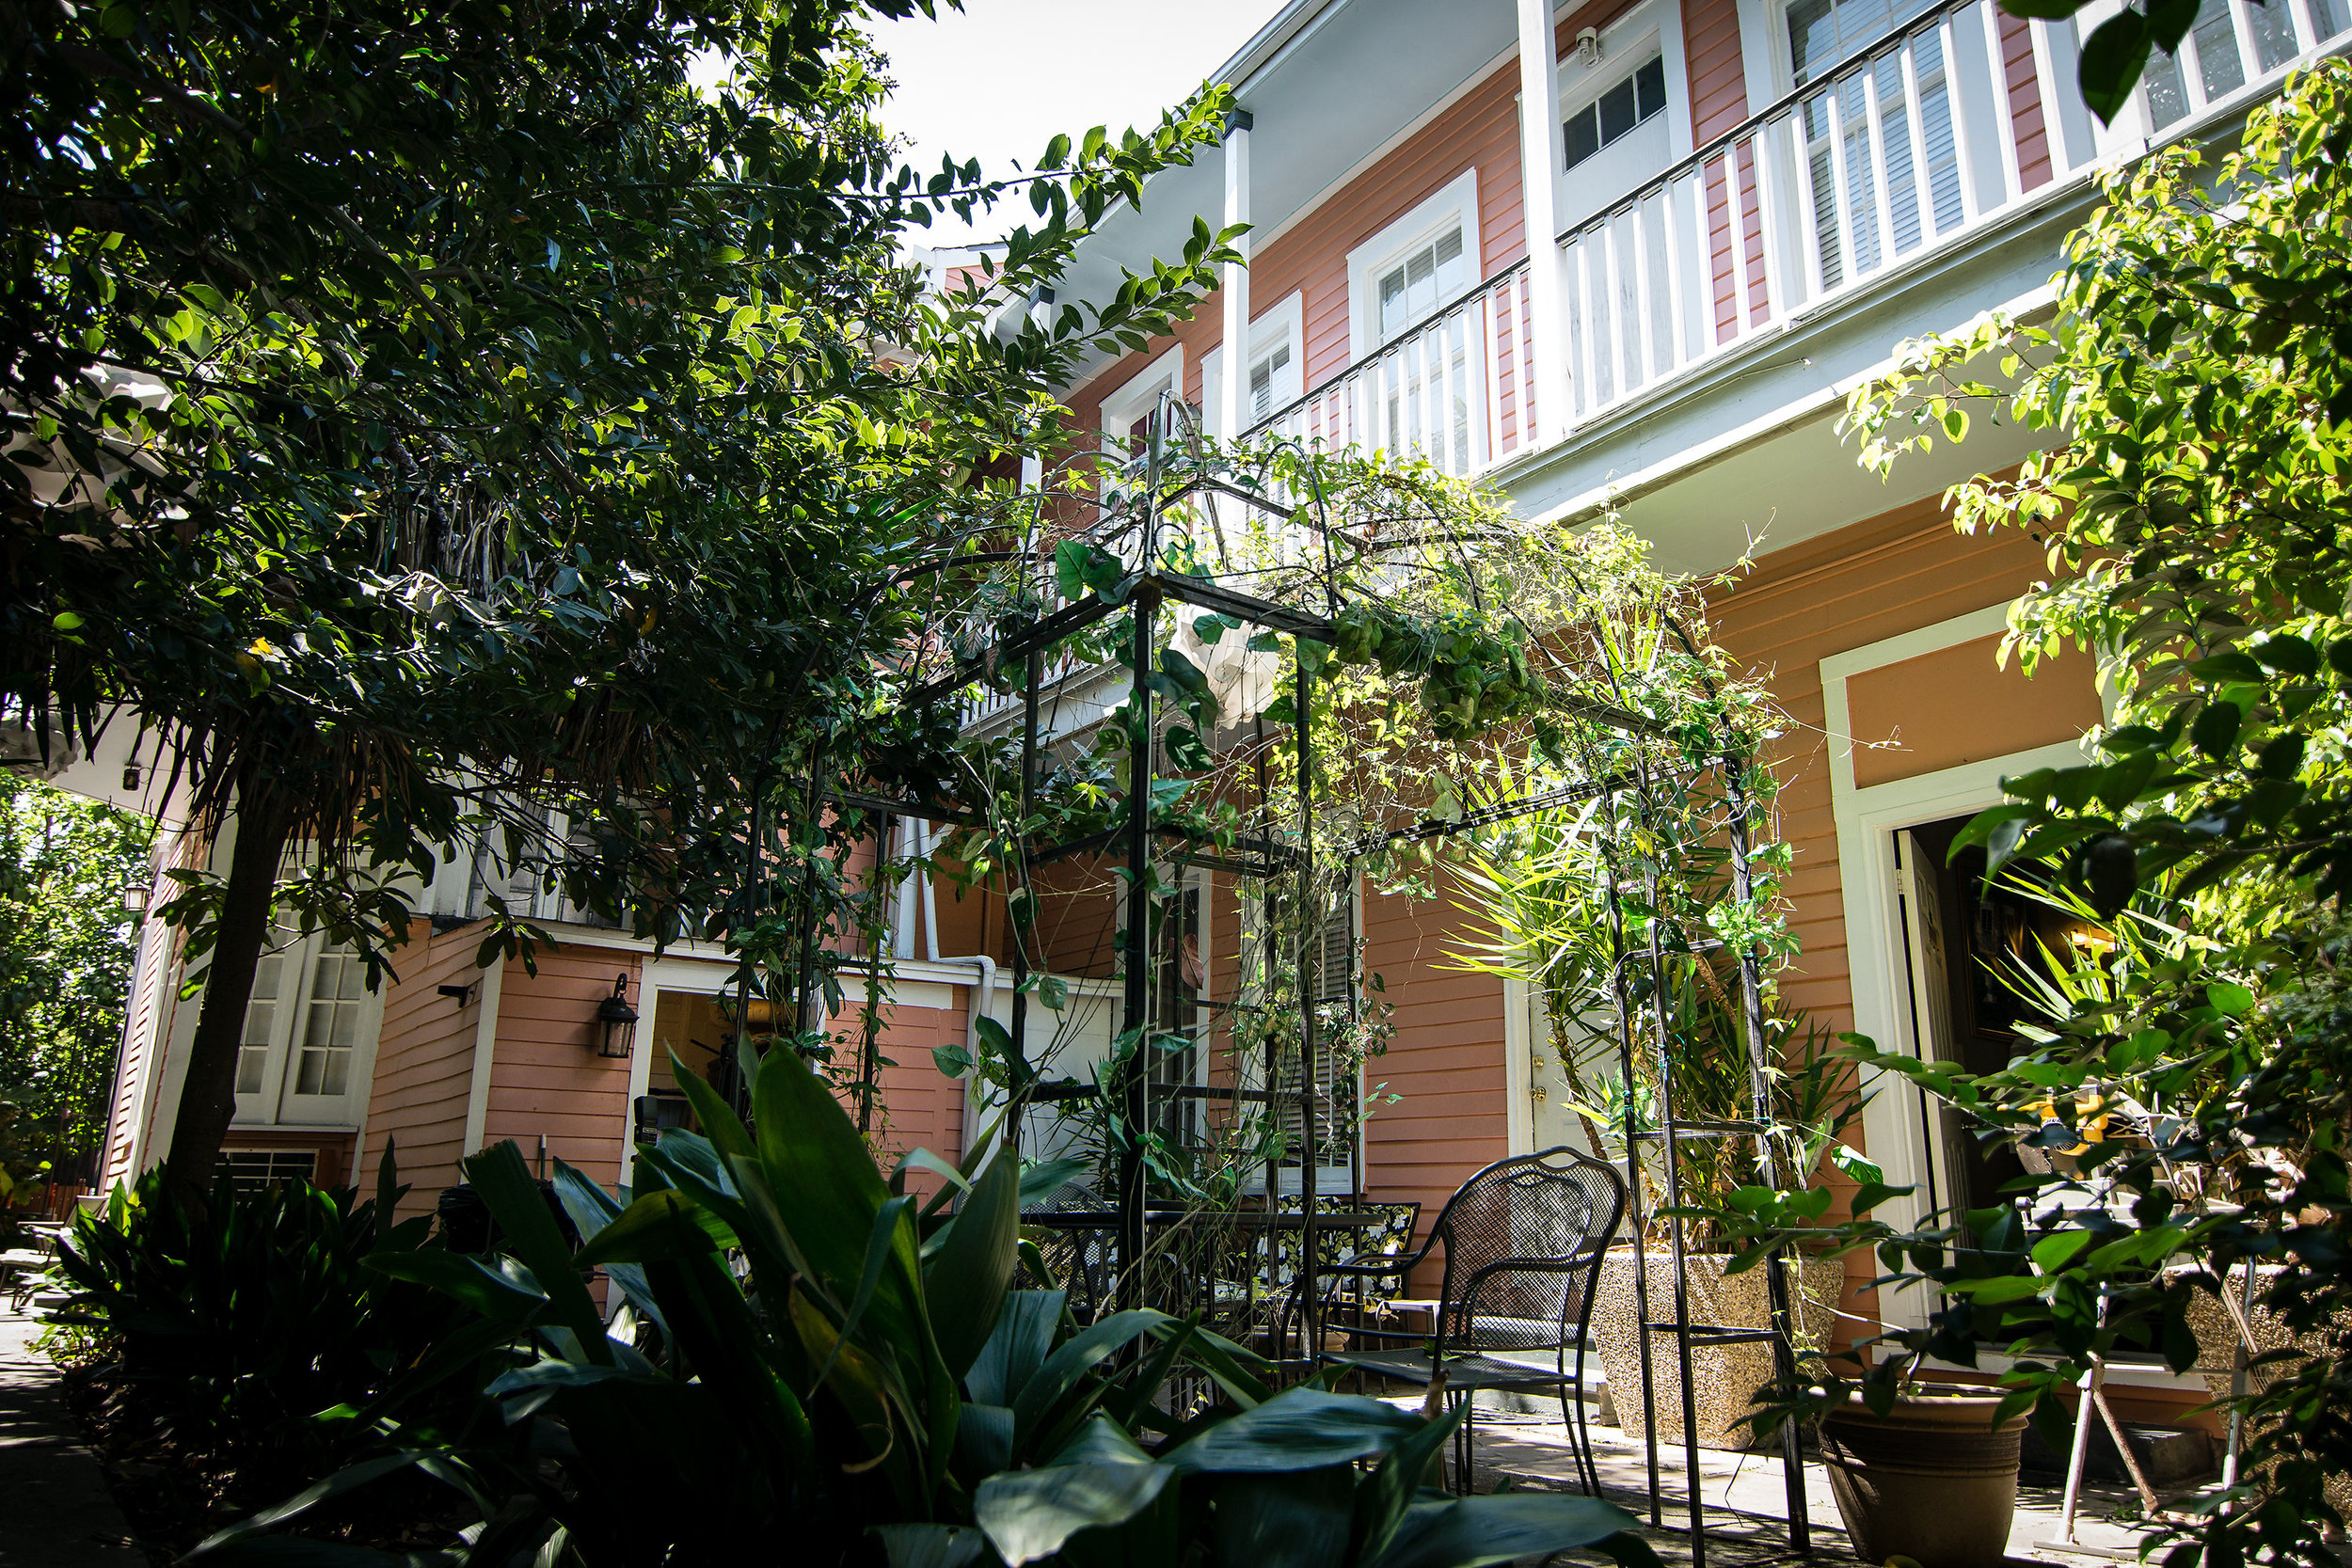 The courtyard at 1227 Esplanade